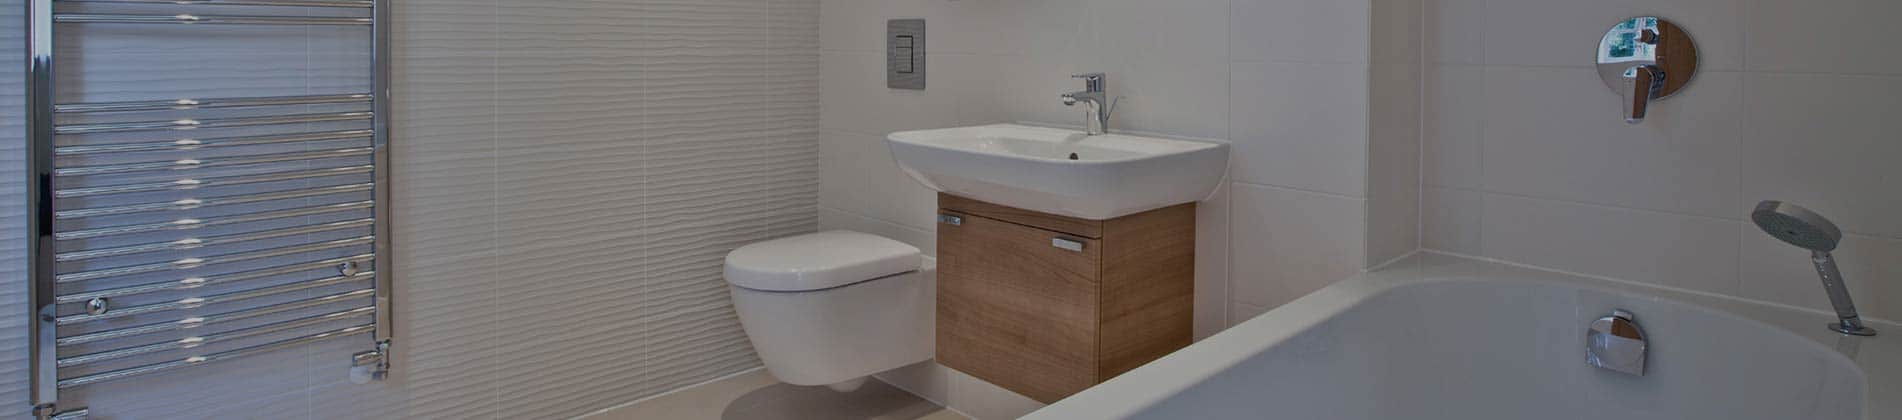 gas installation auckland for bathrooms